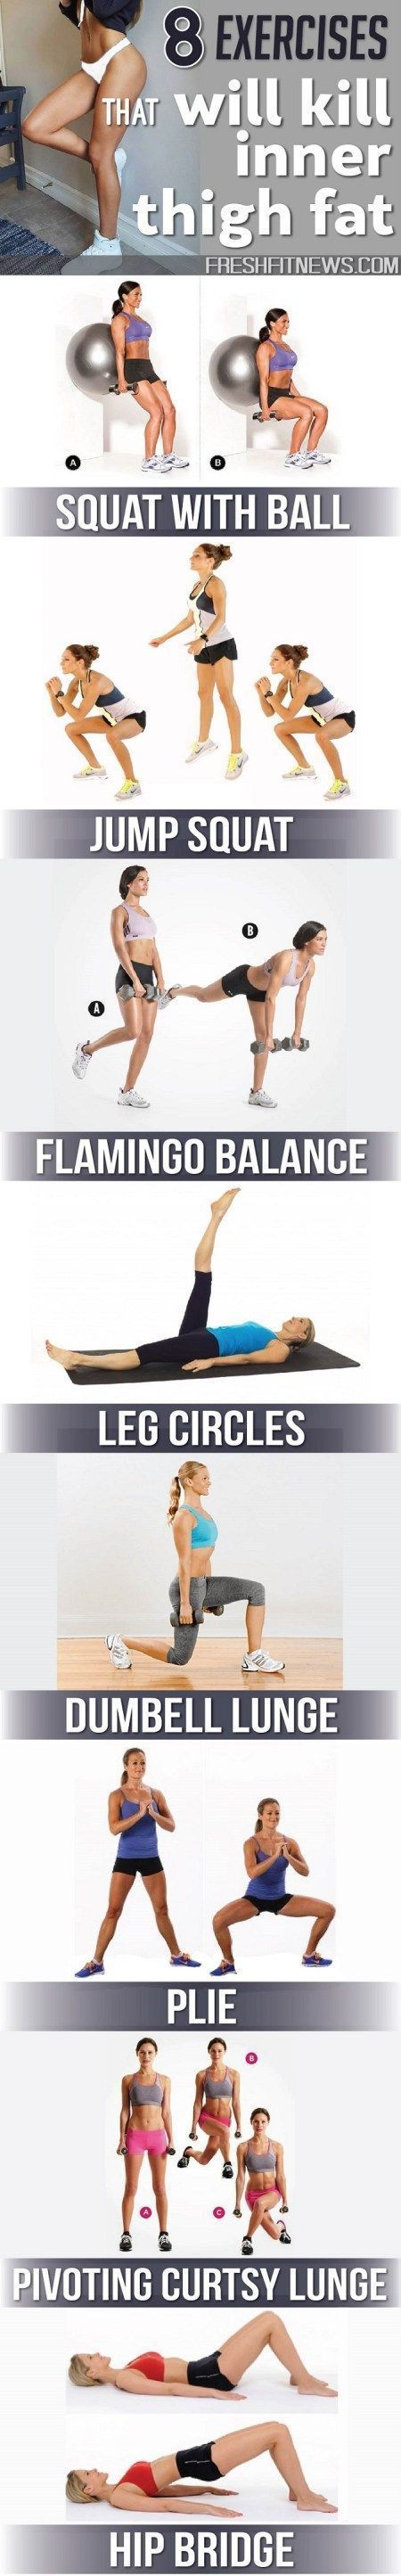 Yoga Poses To Help Reduce Belly Fat